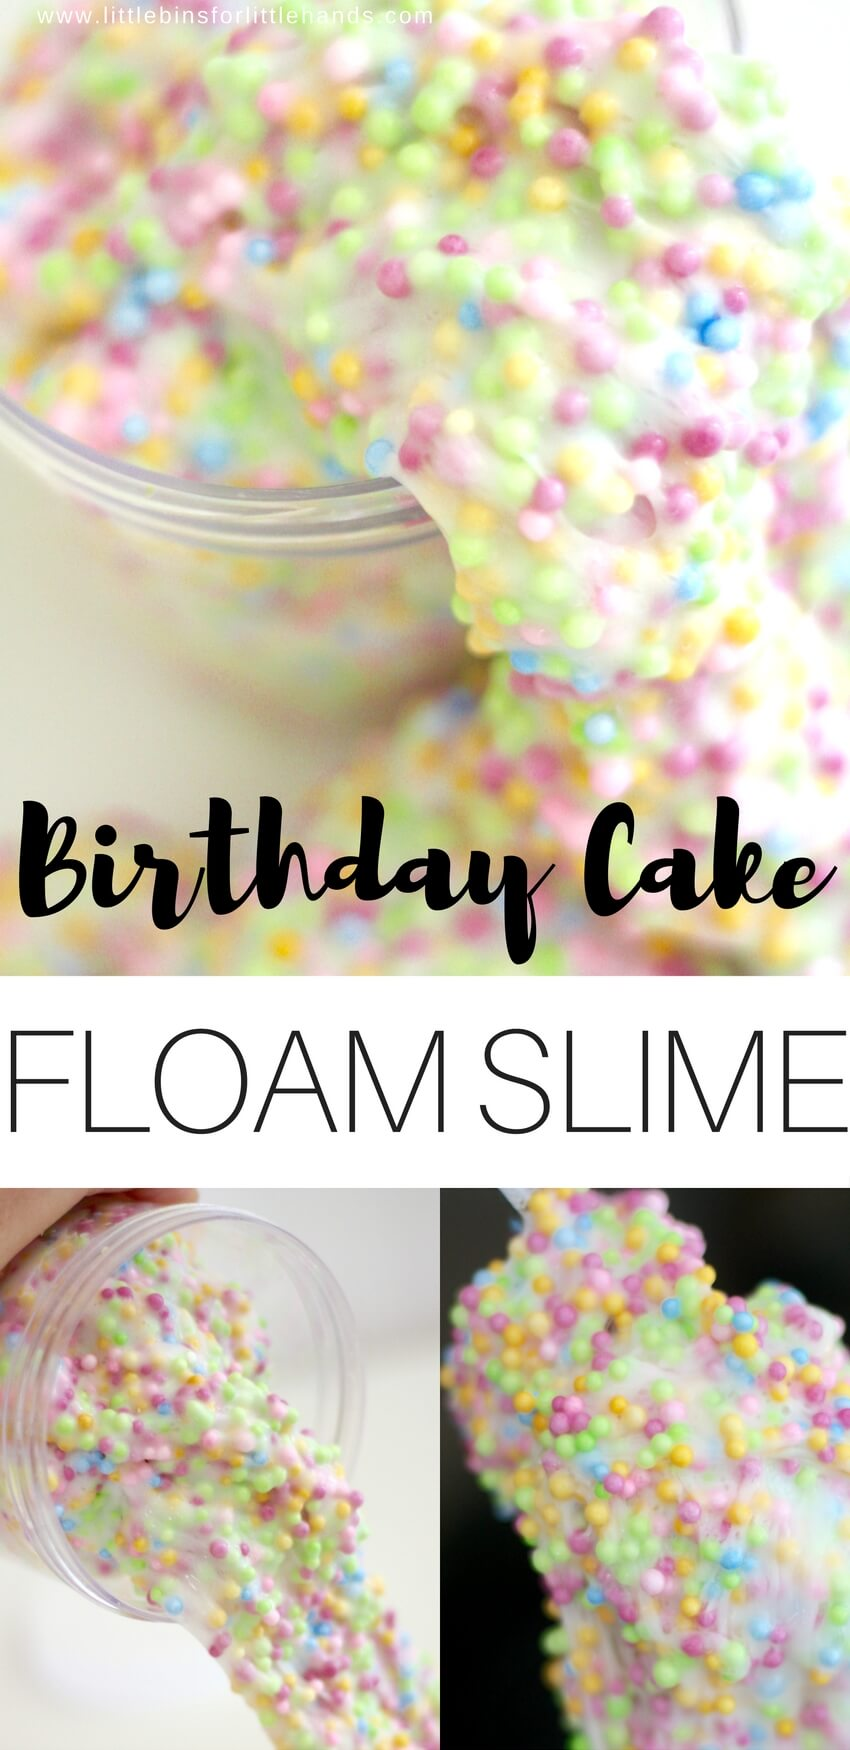 BIRTHDAY CAKE FLOAM SLIME RECIPE FOR KIDS